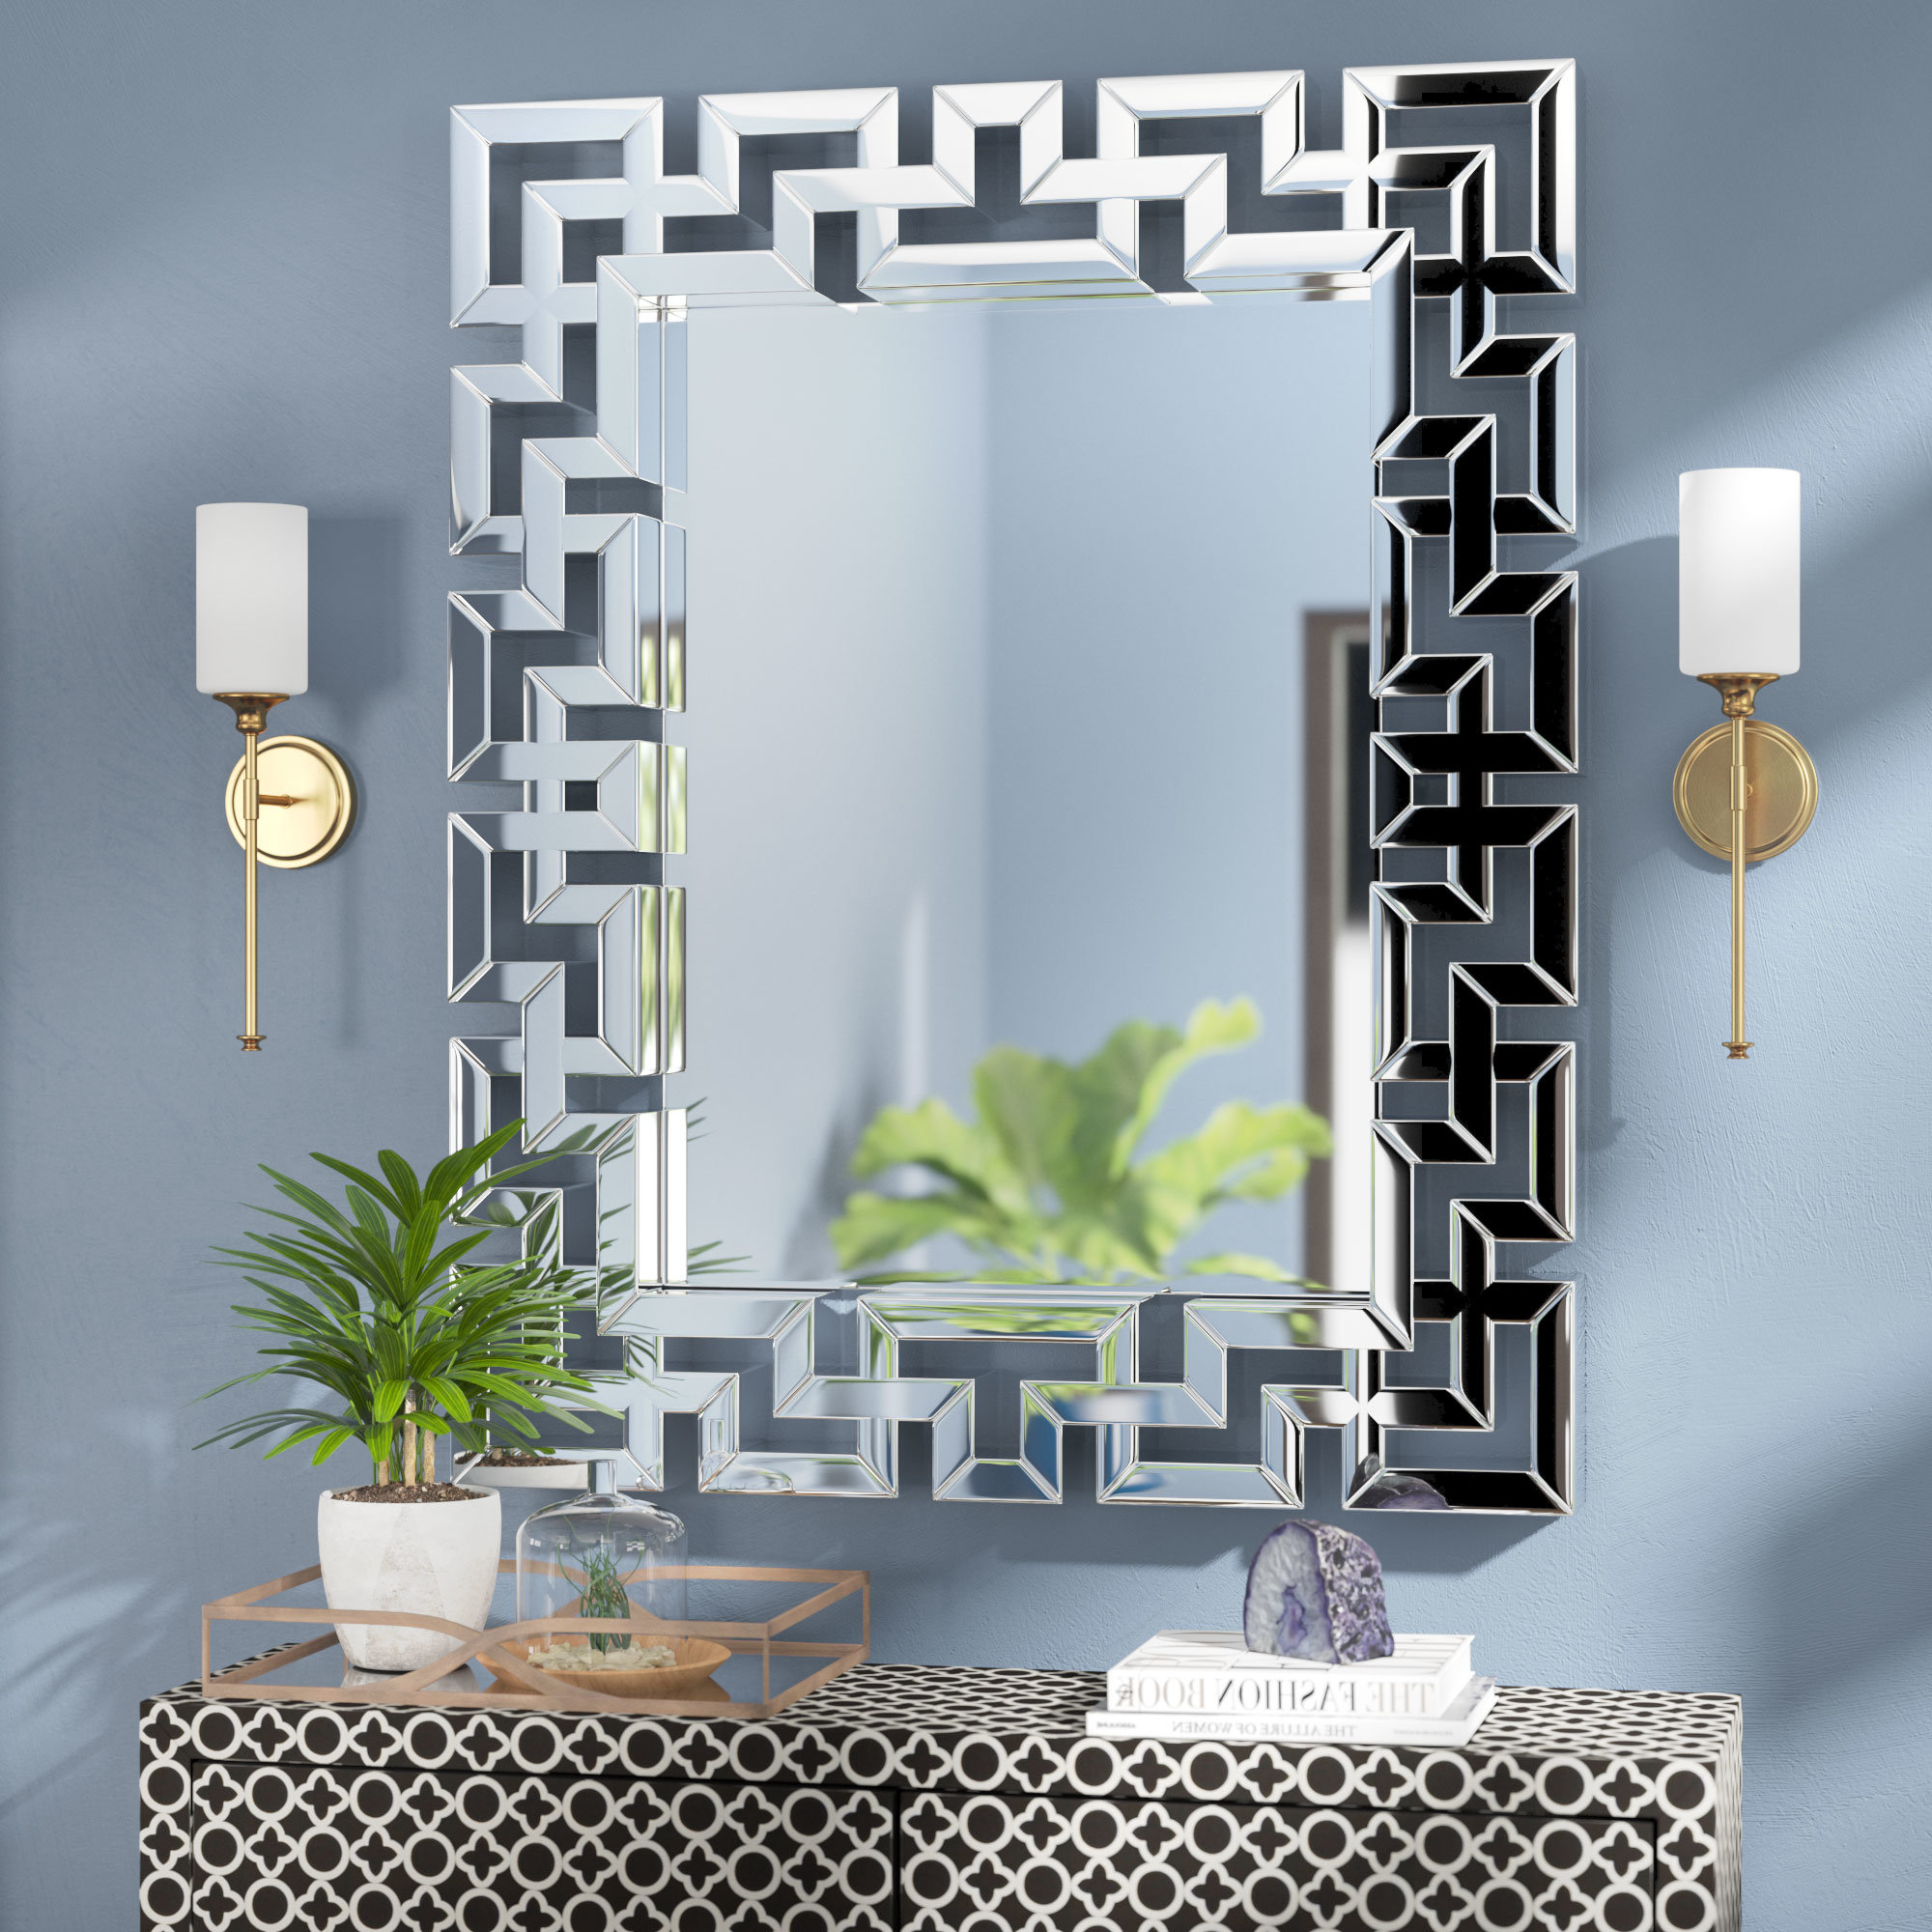 Decorative Rectangular Wall Mirrors Inside Latest Rectangle Ornate Geometric Wall Mirror (View 6 of 20)